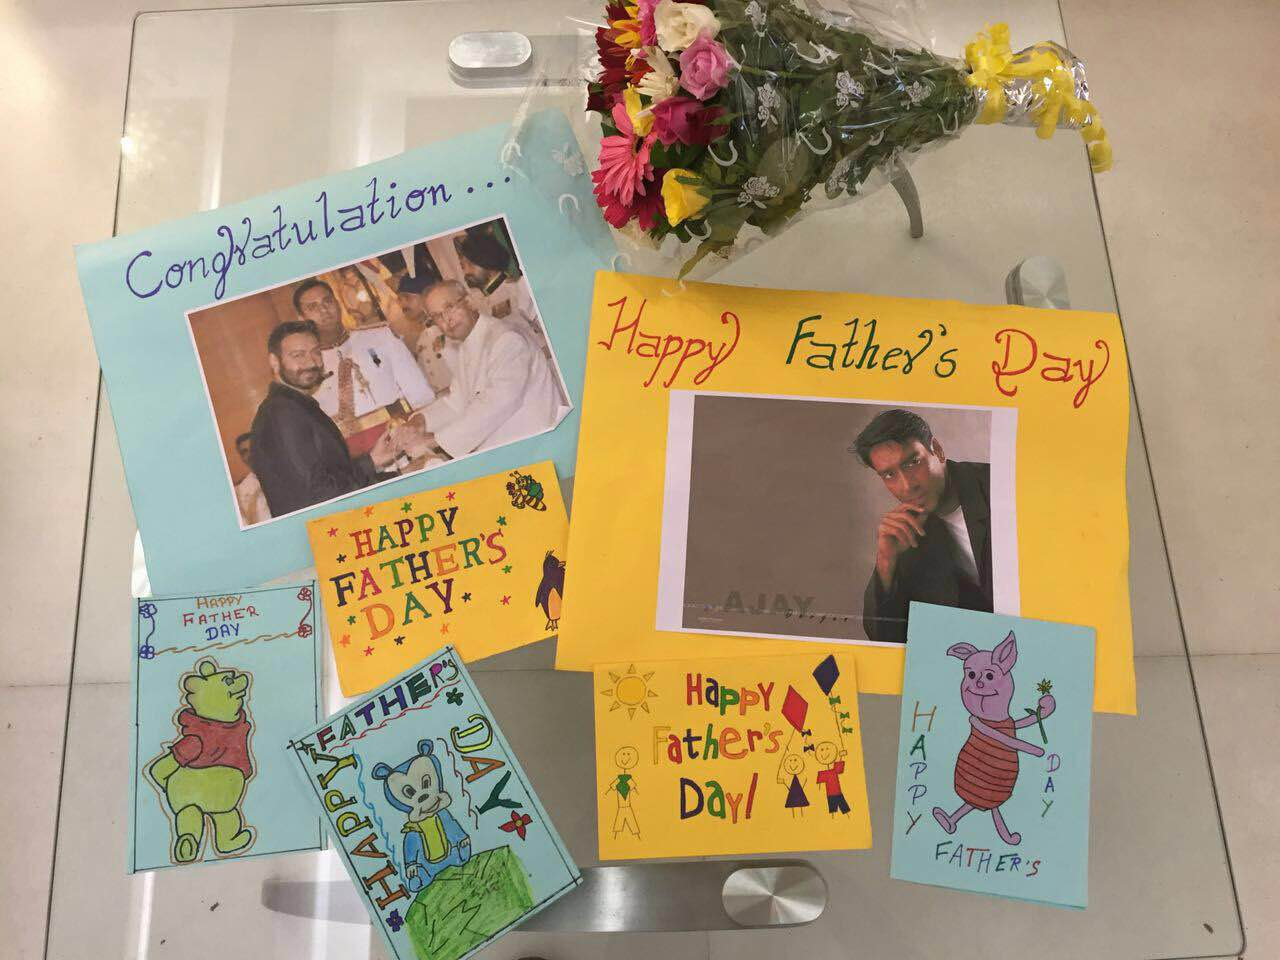 Father's Day card made by Smile Foundation kids